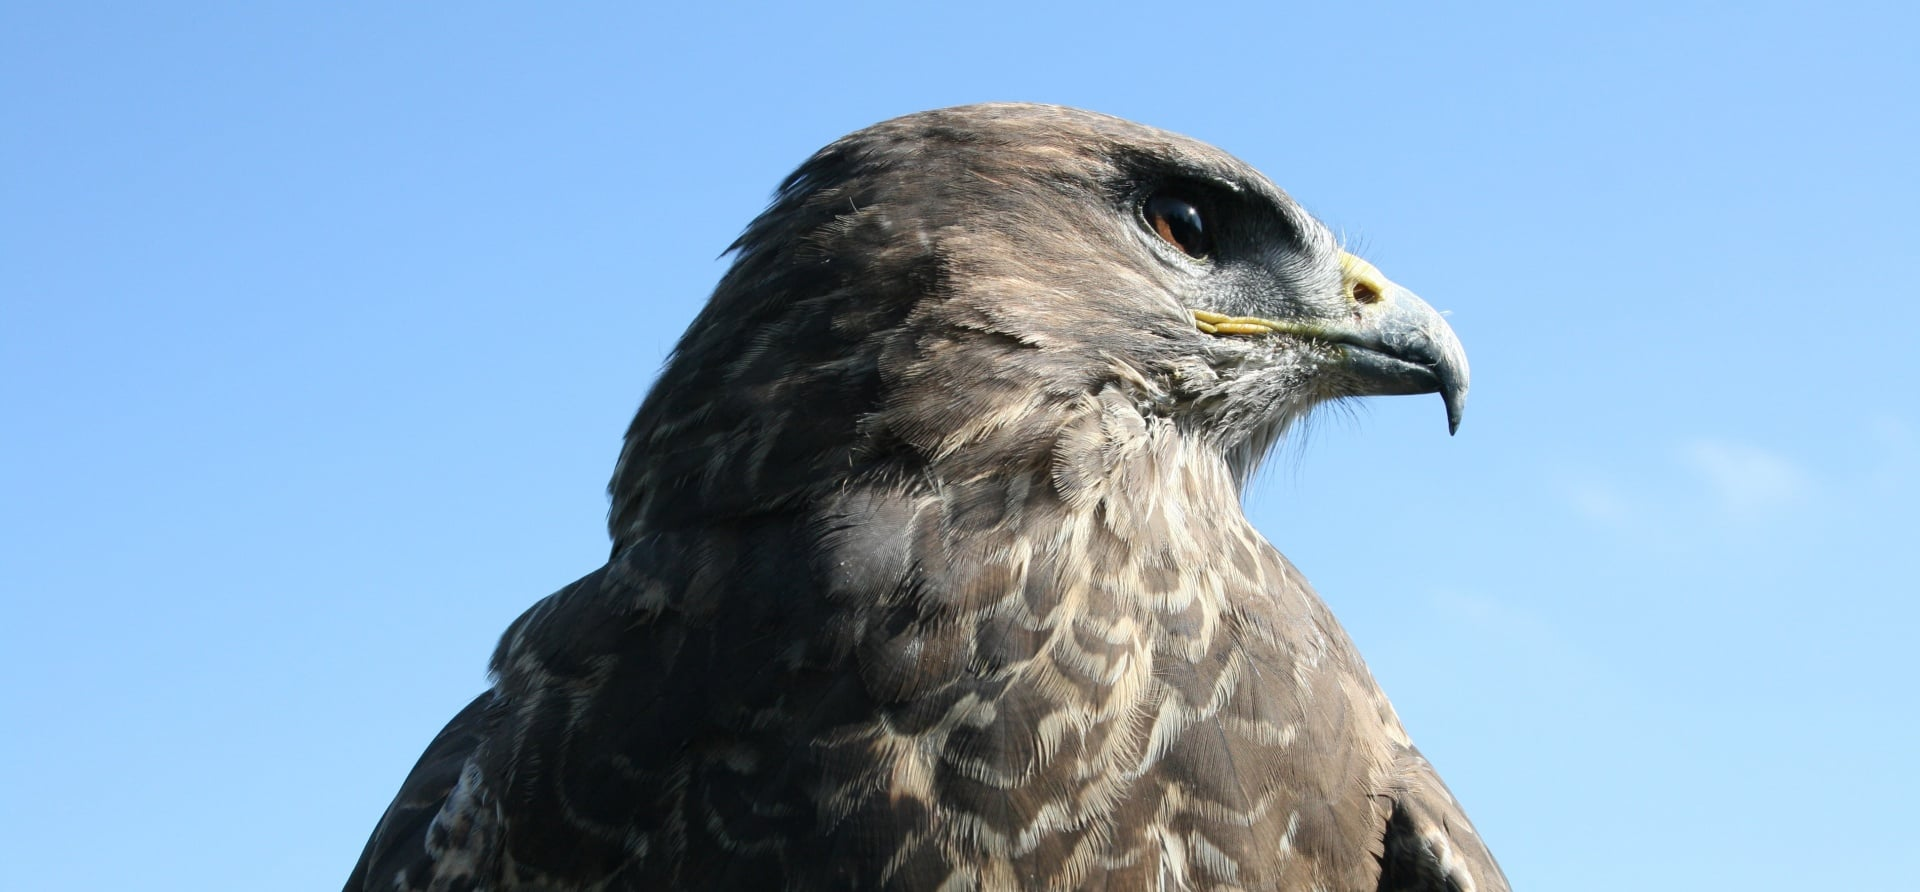 Bird Of Prey Full Day Experience - Herefordshire